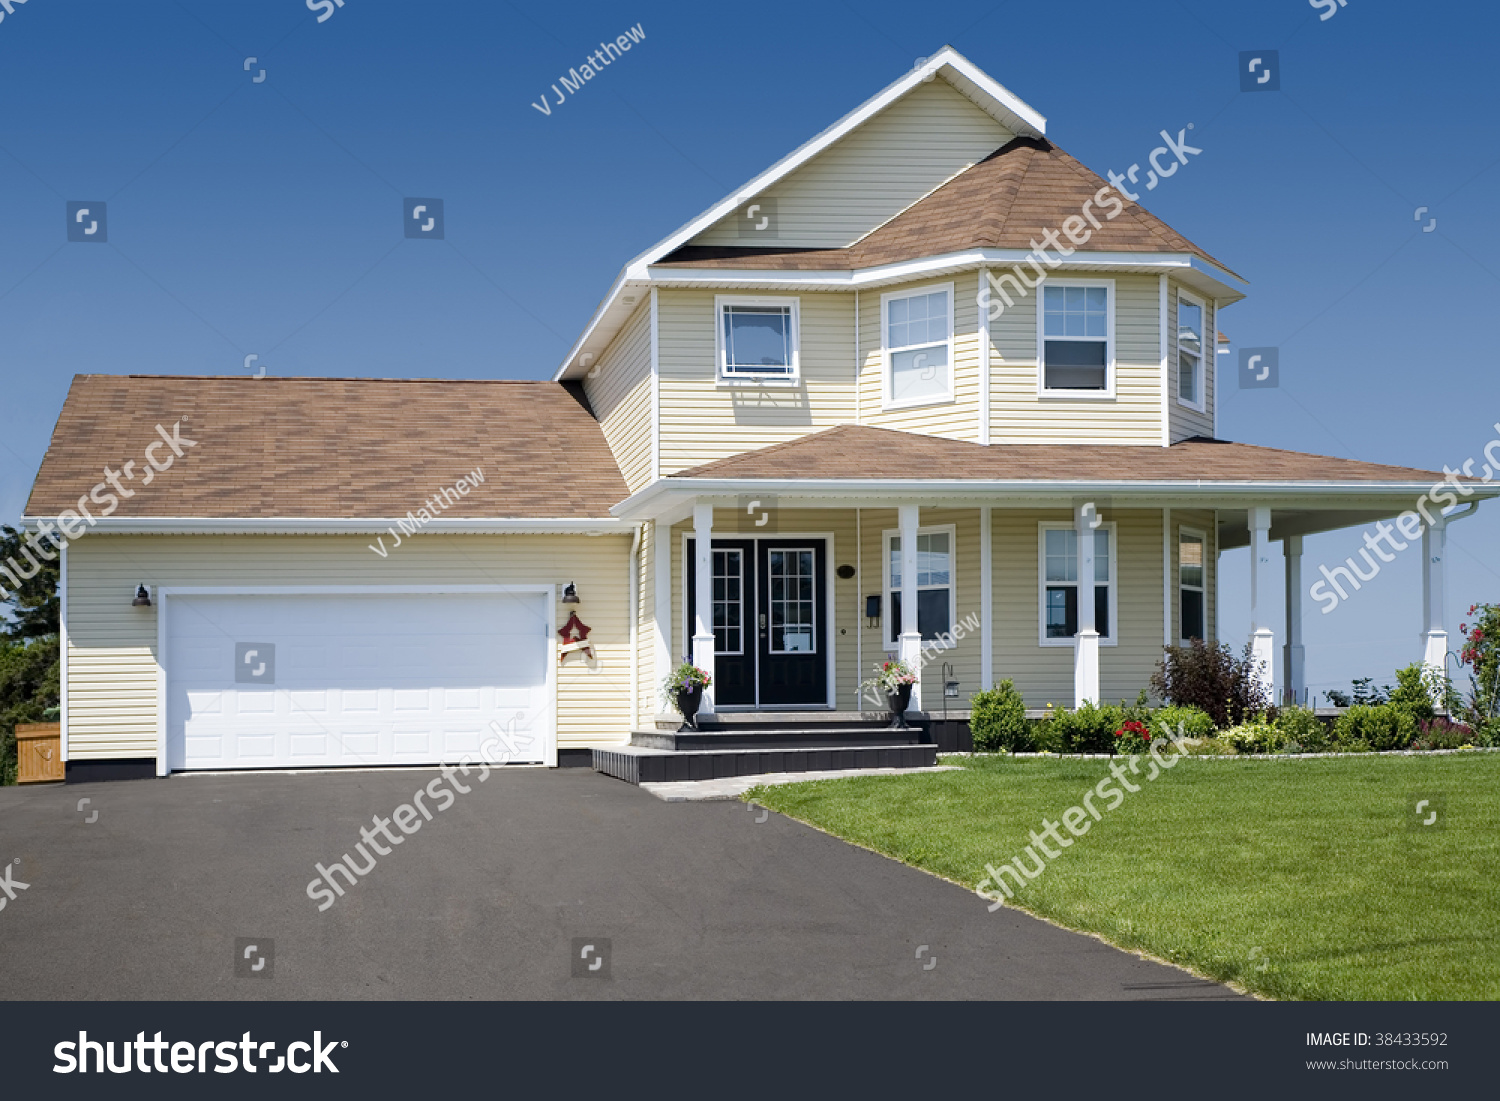 A large family home in the suburbs stock photo 38433592 for Large family home